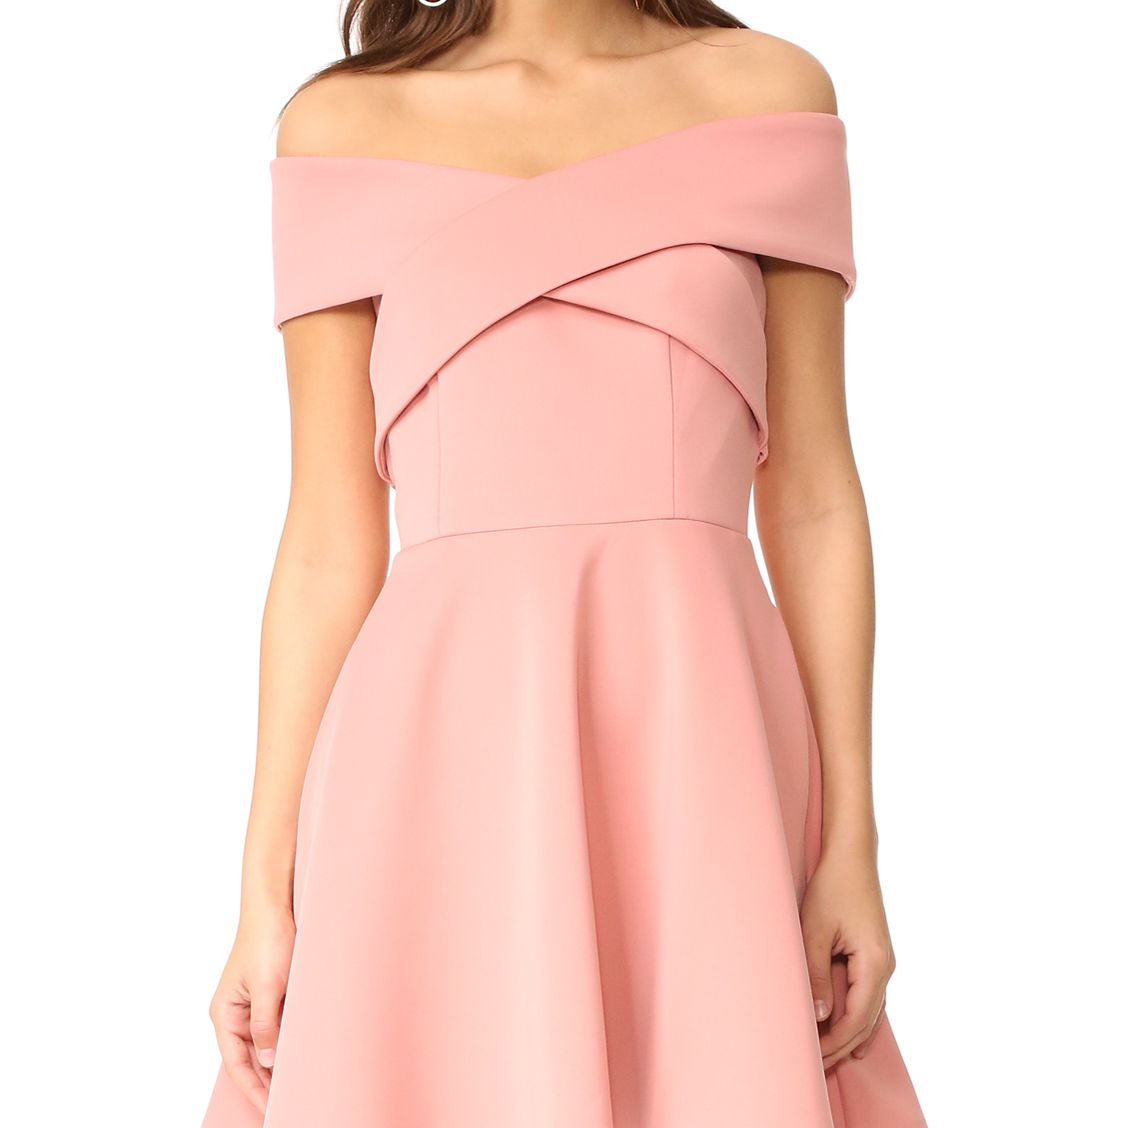 The Best Dresses To Wear To A Wedding,Autumn Wedding Guest Dresses